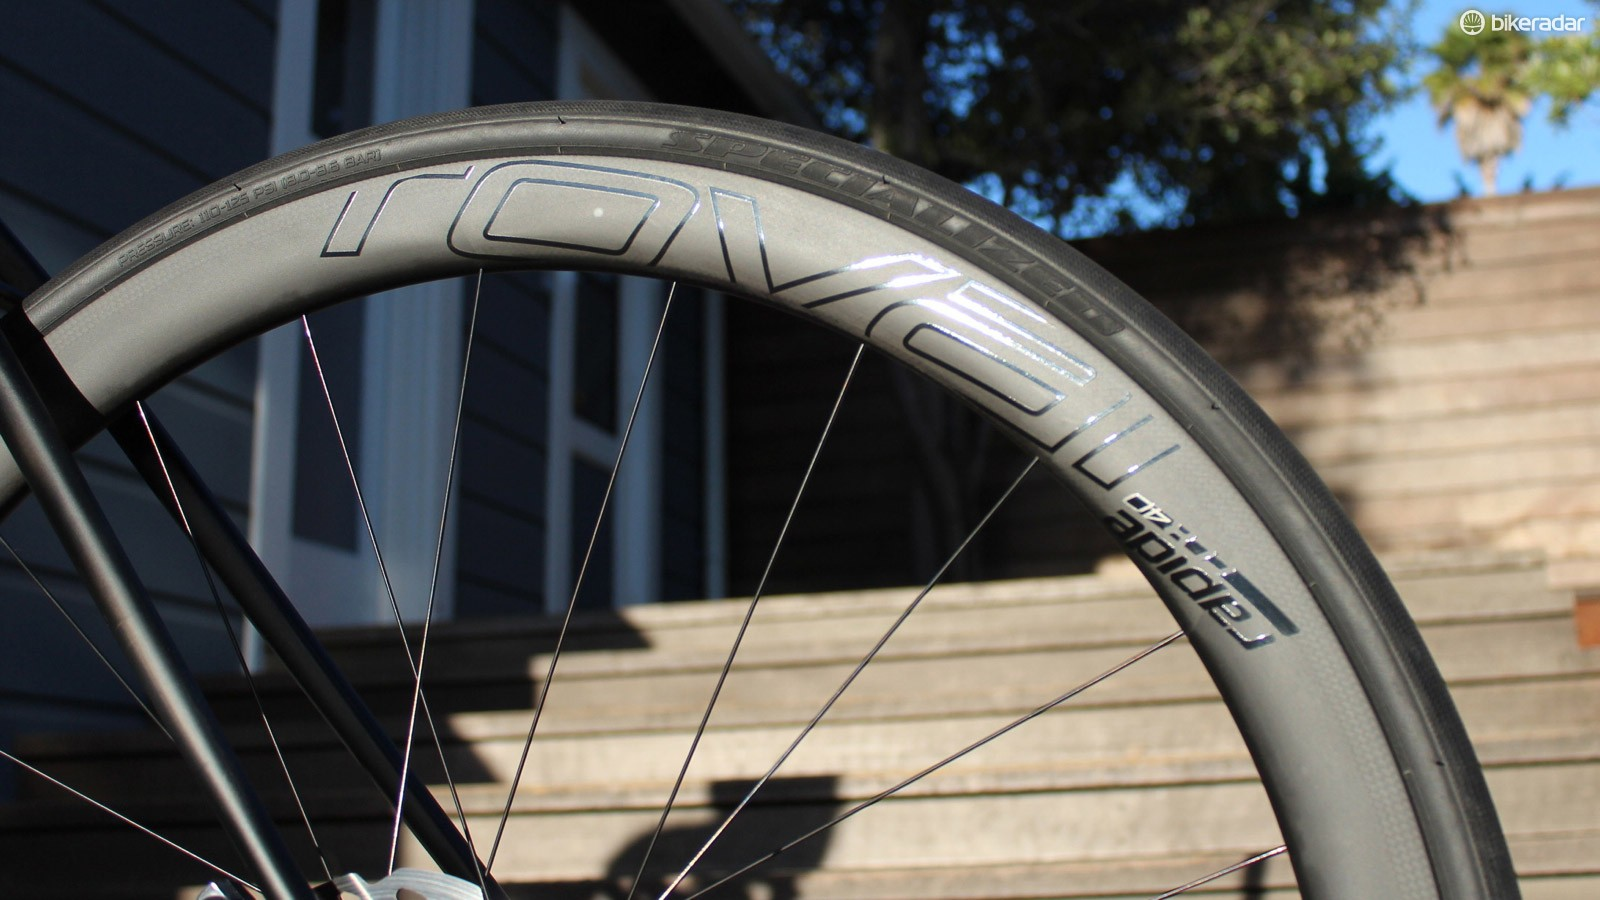 Specialized's house-brand Roval carbon clinchers held up well despite a few hundred miles on dirt (and many more on paved roads)